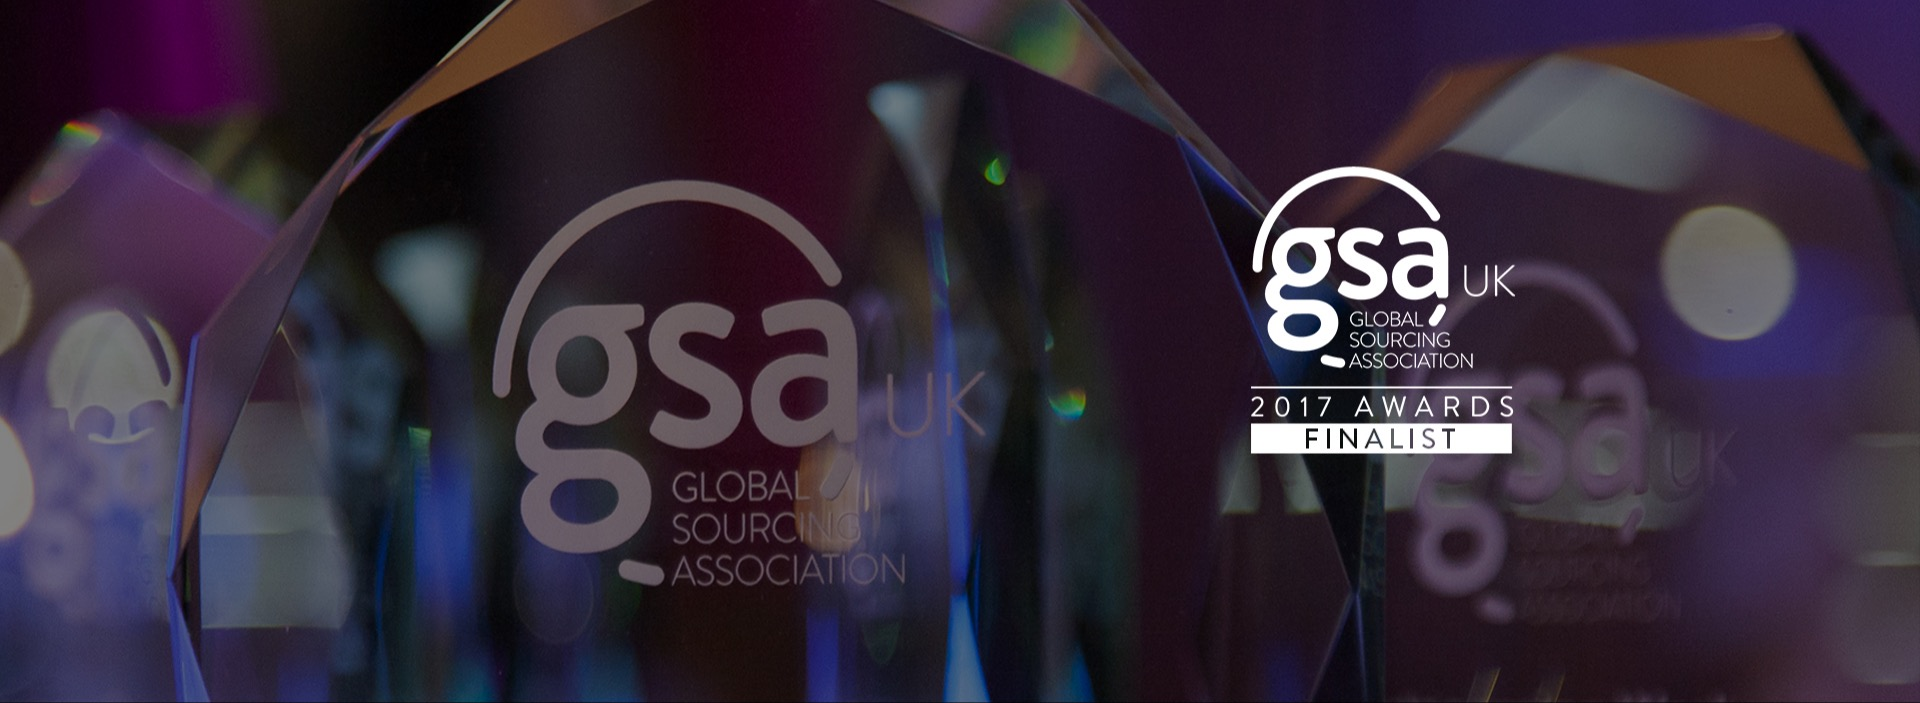 N-iX is shortlisted in 4 categories of GSA UK Awards 2018